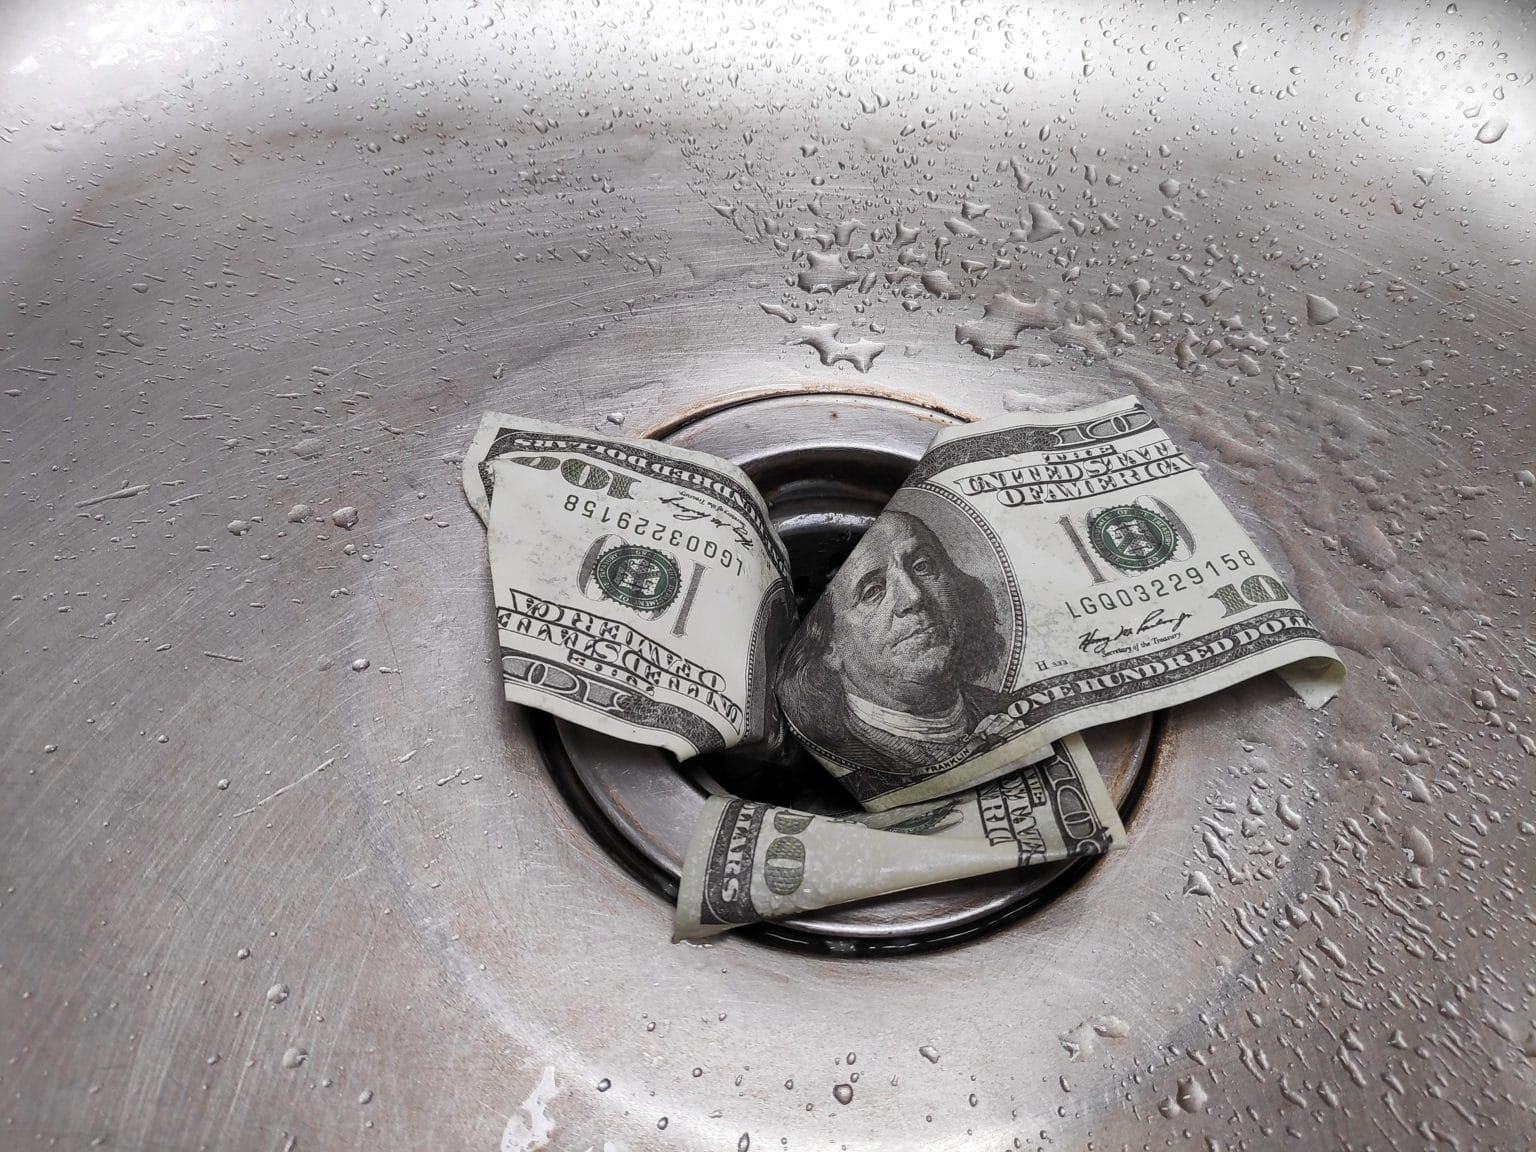 Stop Wasting Money, money down the drain